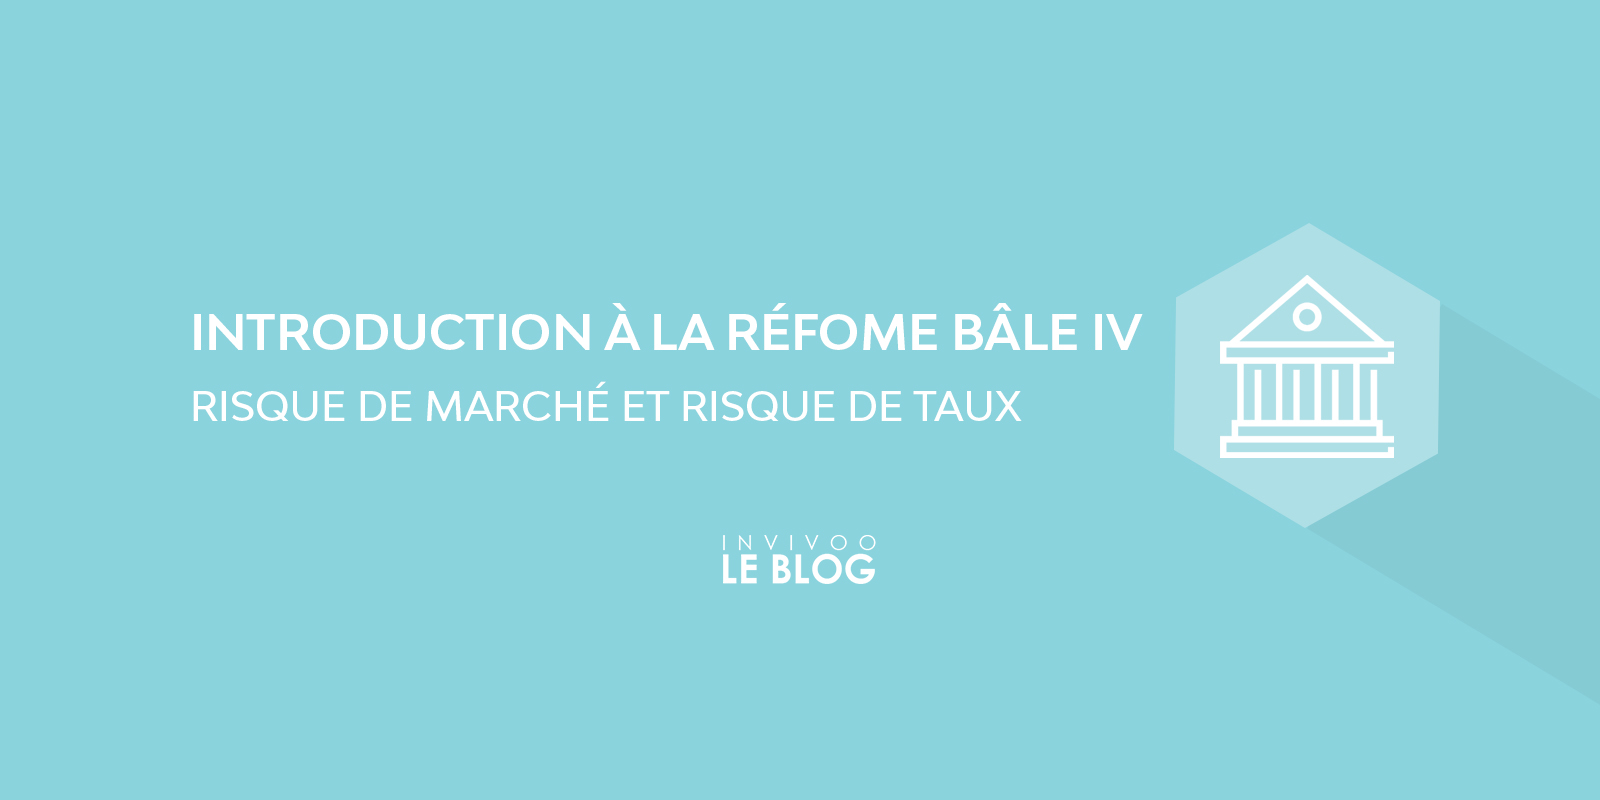 Introduction à la réforme Bâle IV